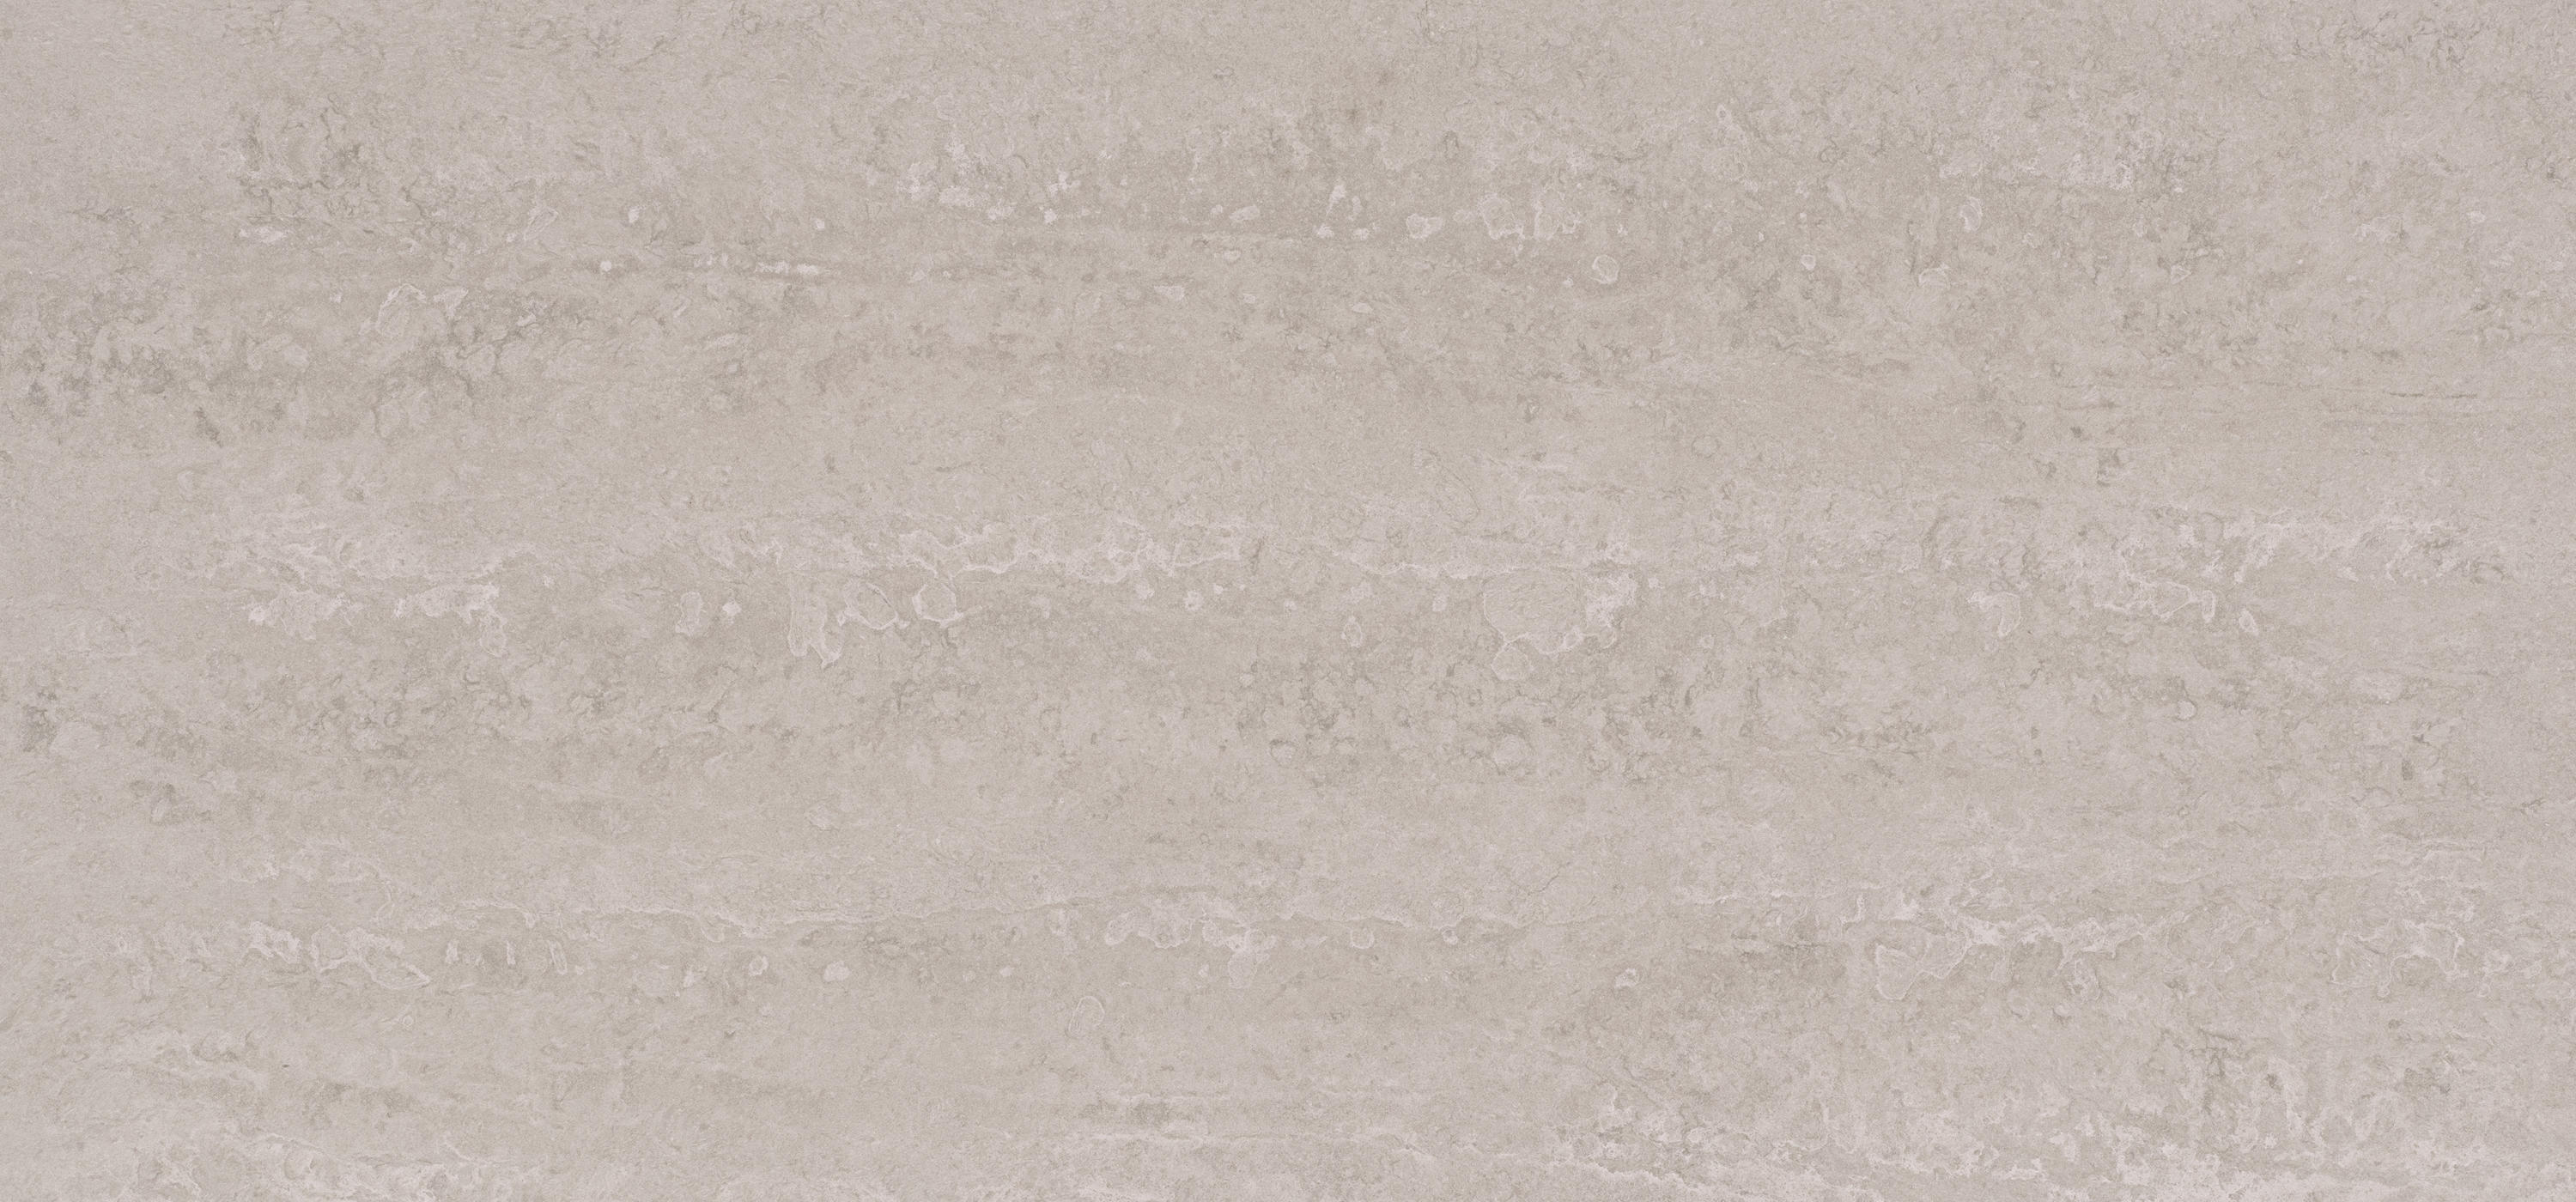 TOPUS CONCRETE - Mineral composite panels from Caesarstone